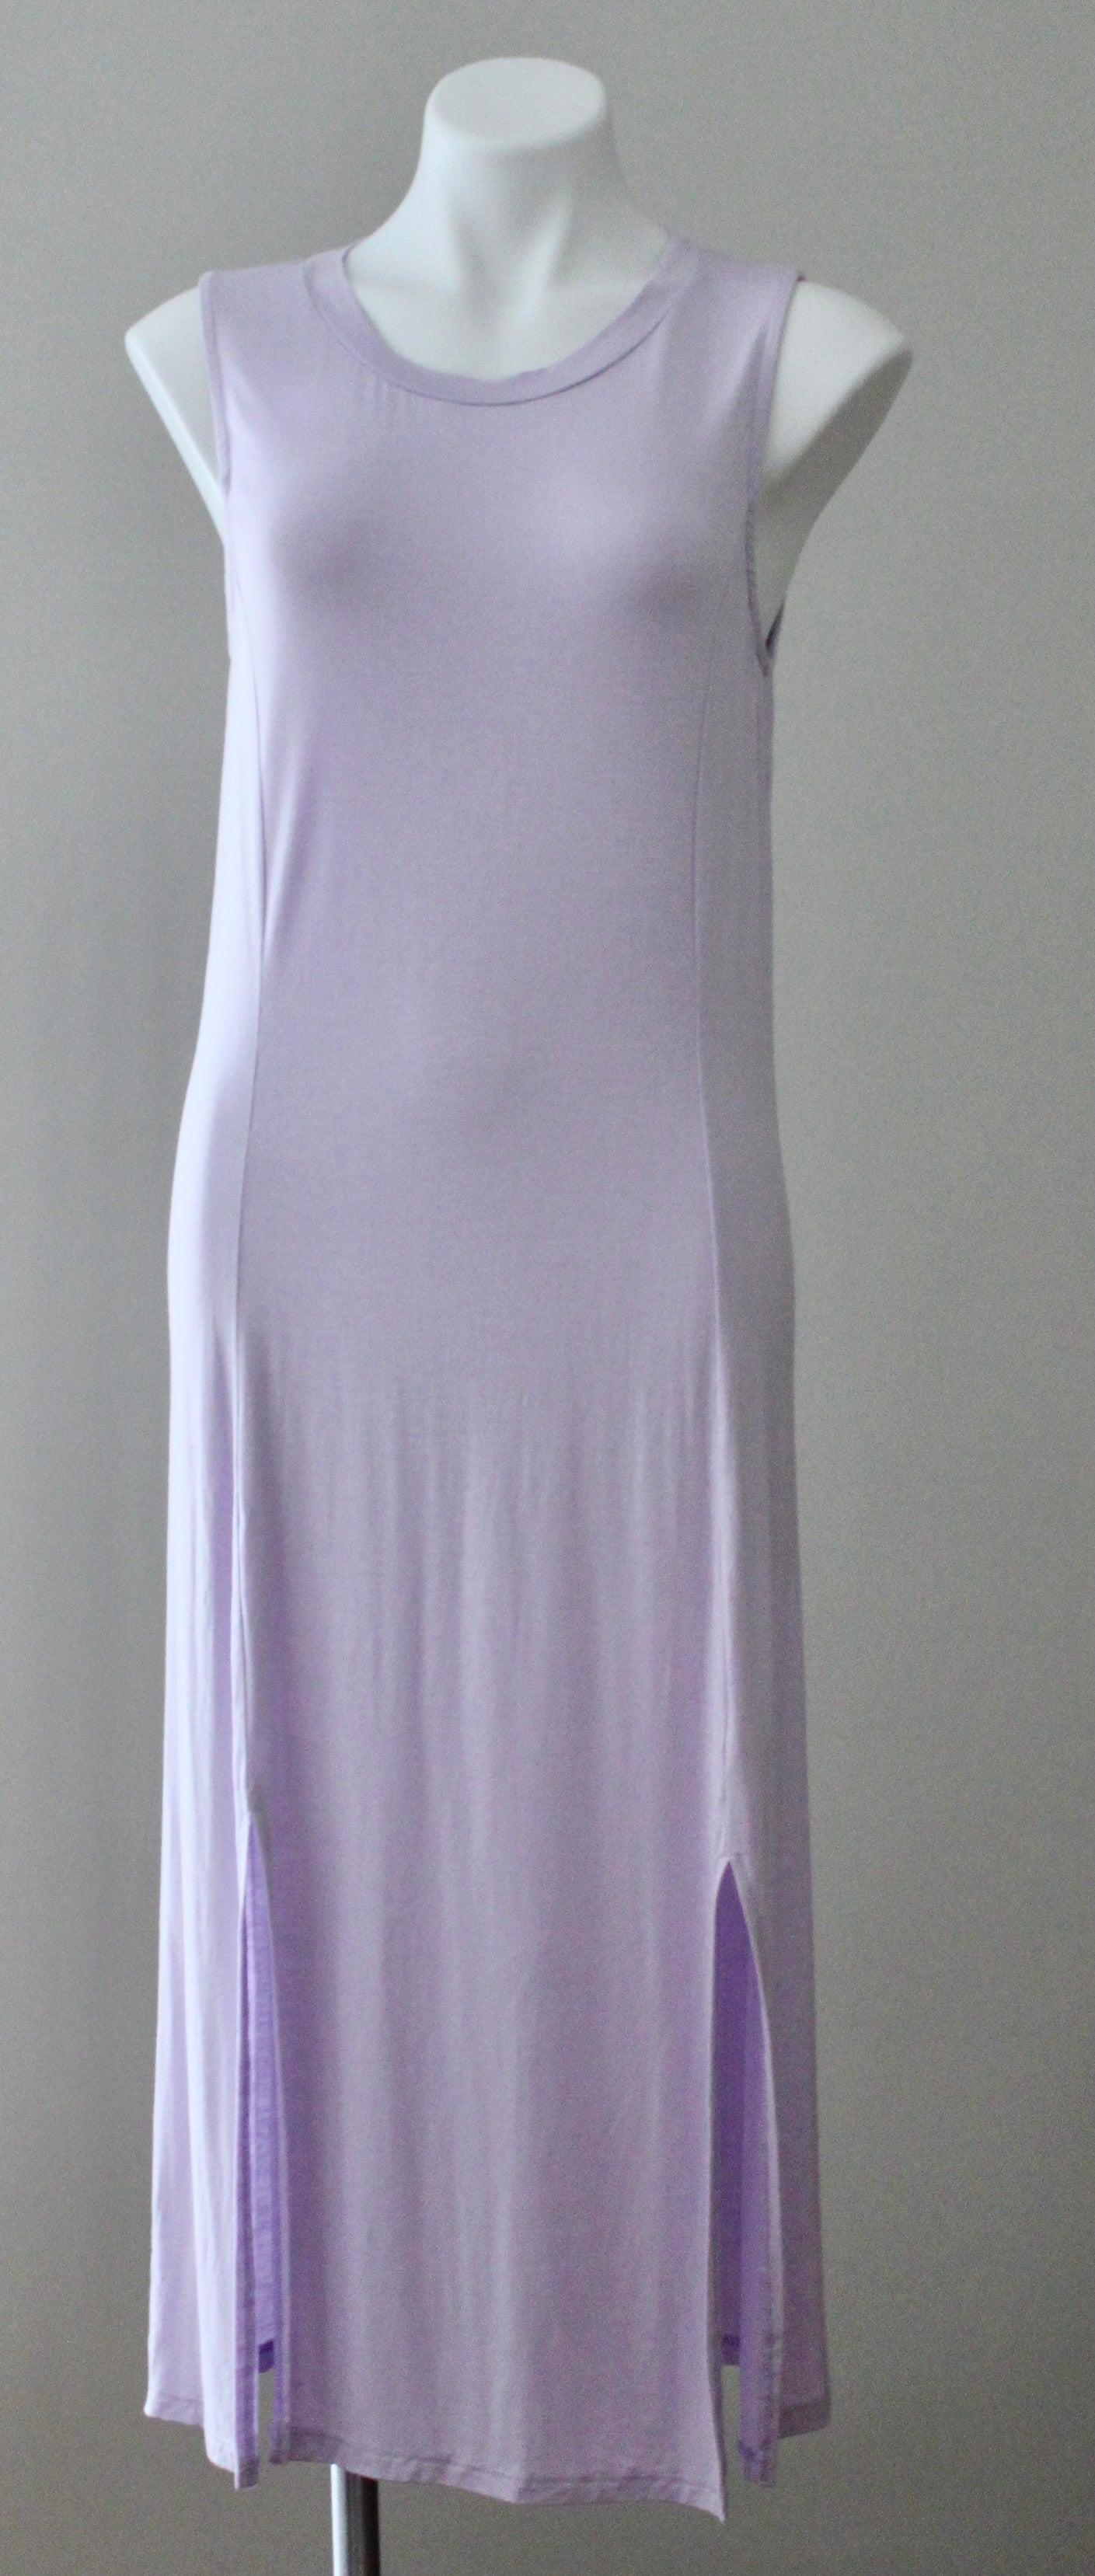 EVERLY Dark Winter iced lavender dress